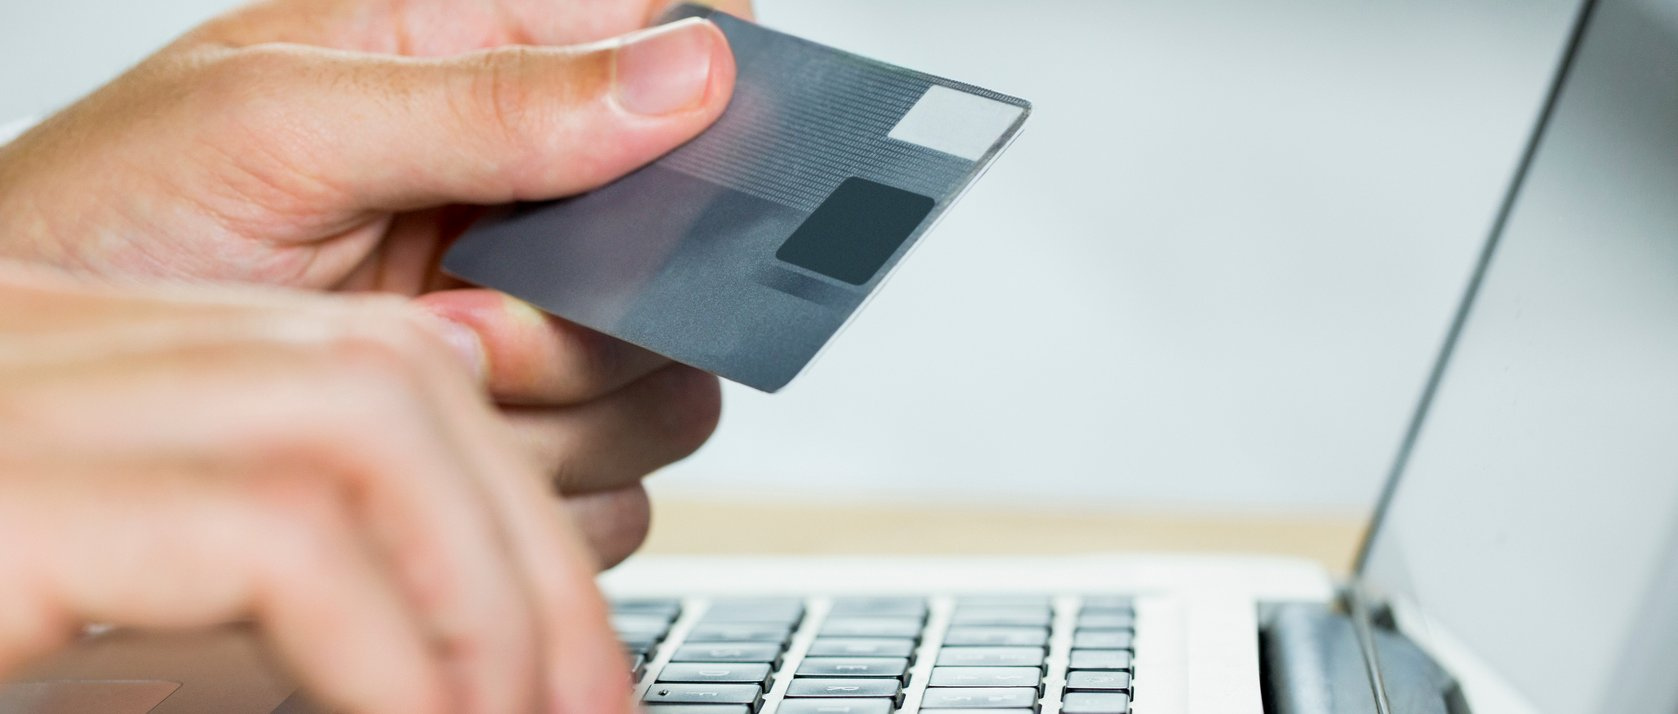 Do Business Credit Cards Affect Your Personal Credit Score?